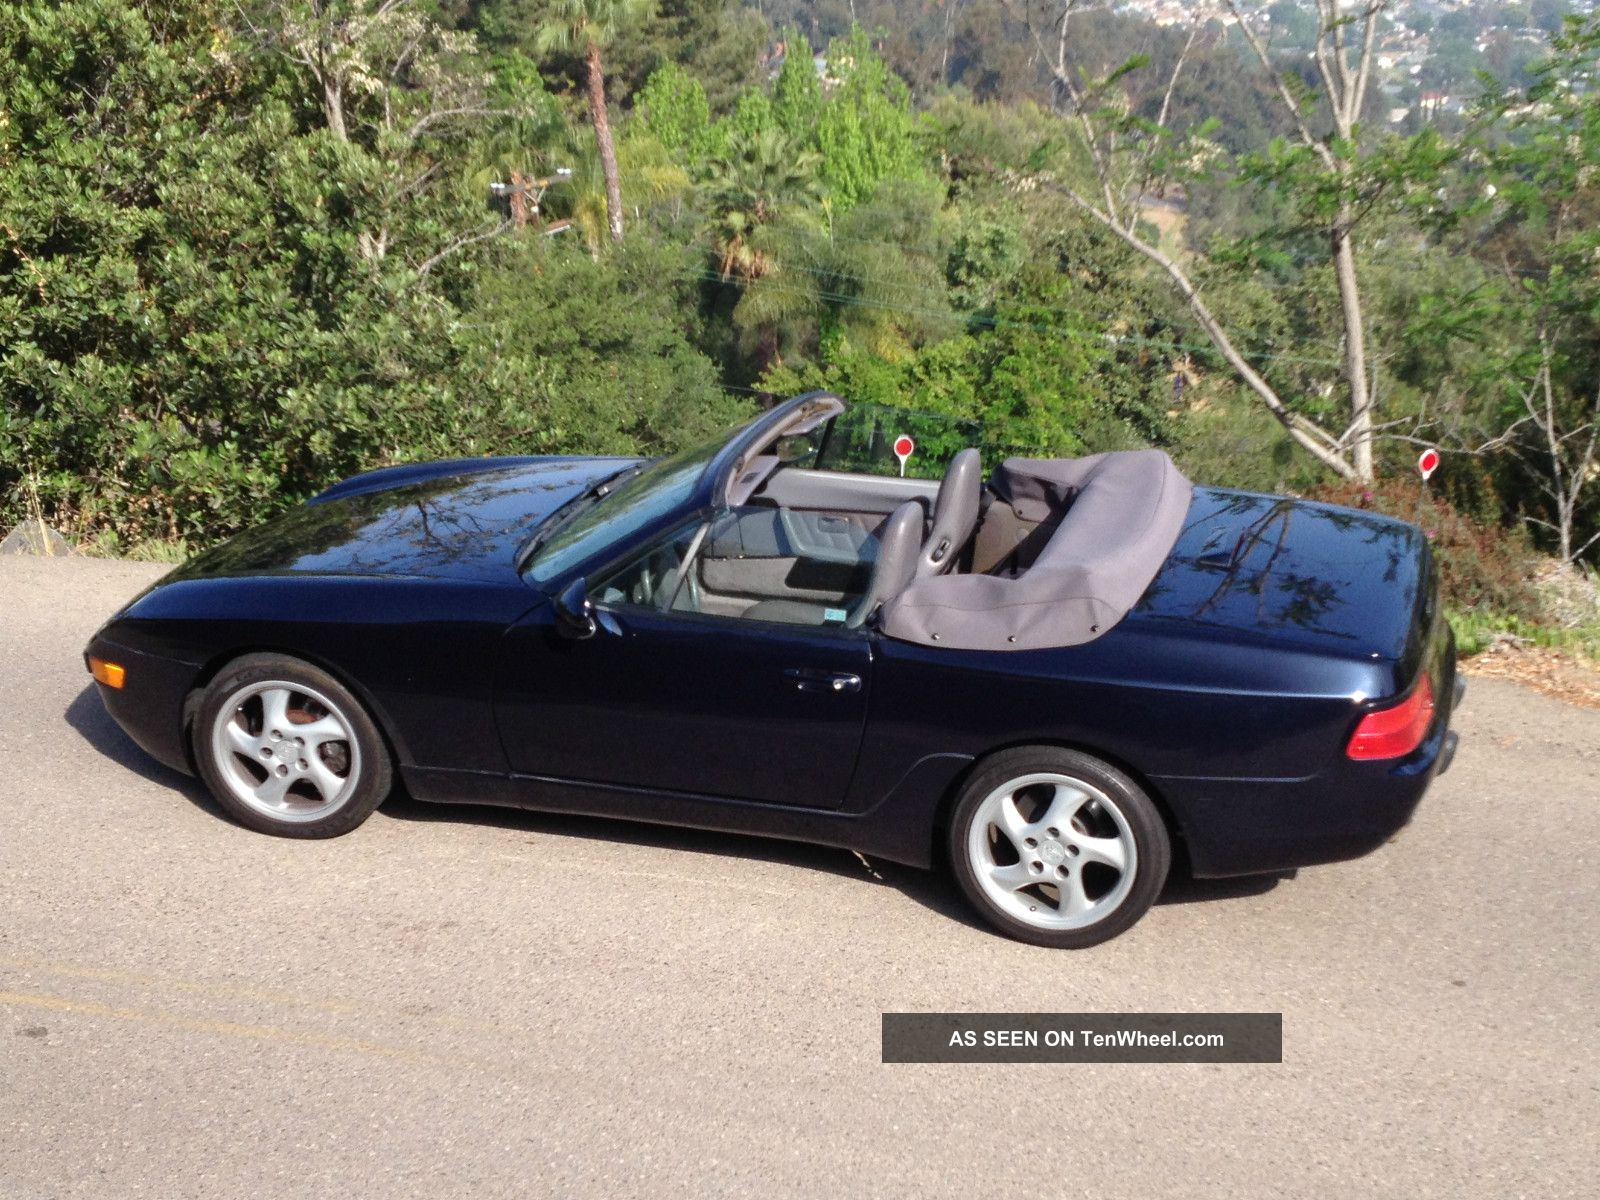 ... 1995 Porsche 968 Convertible (last Year Of Production) 968 photo 7 ...